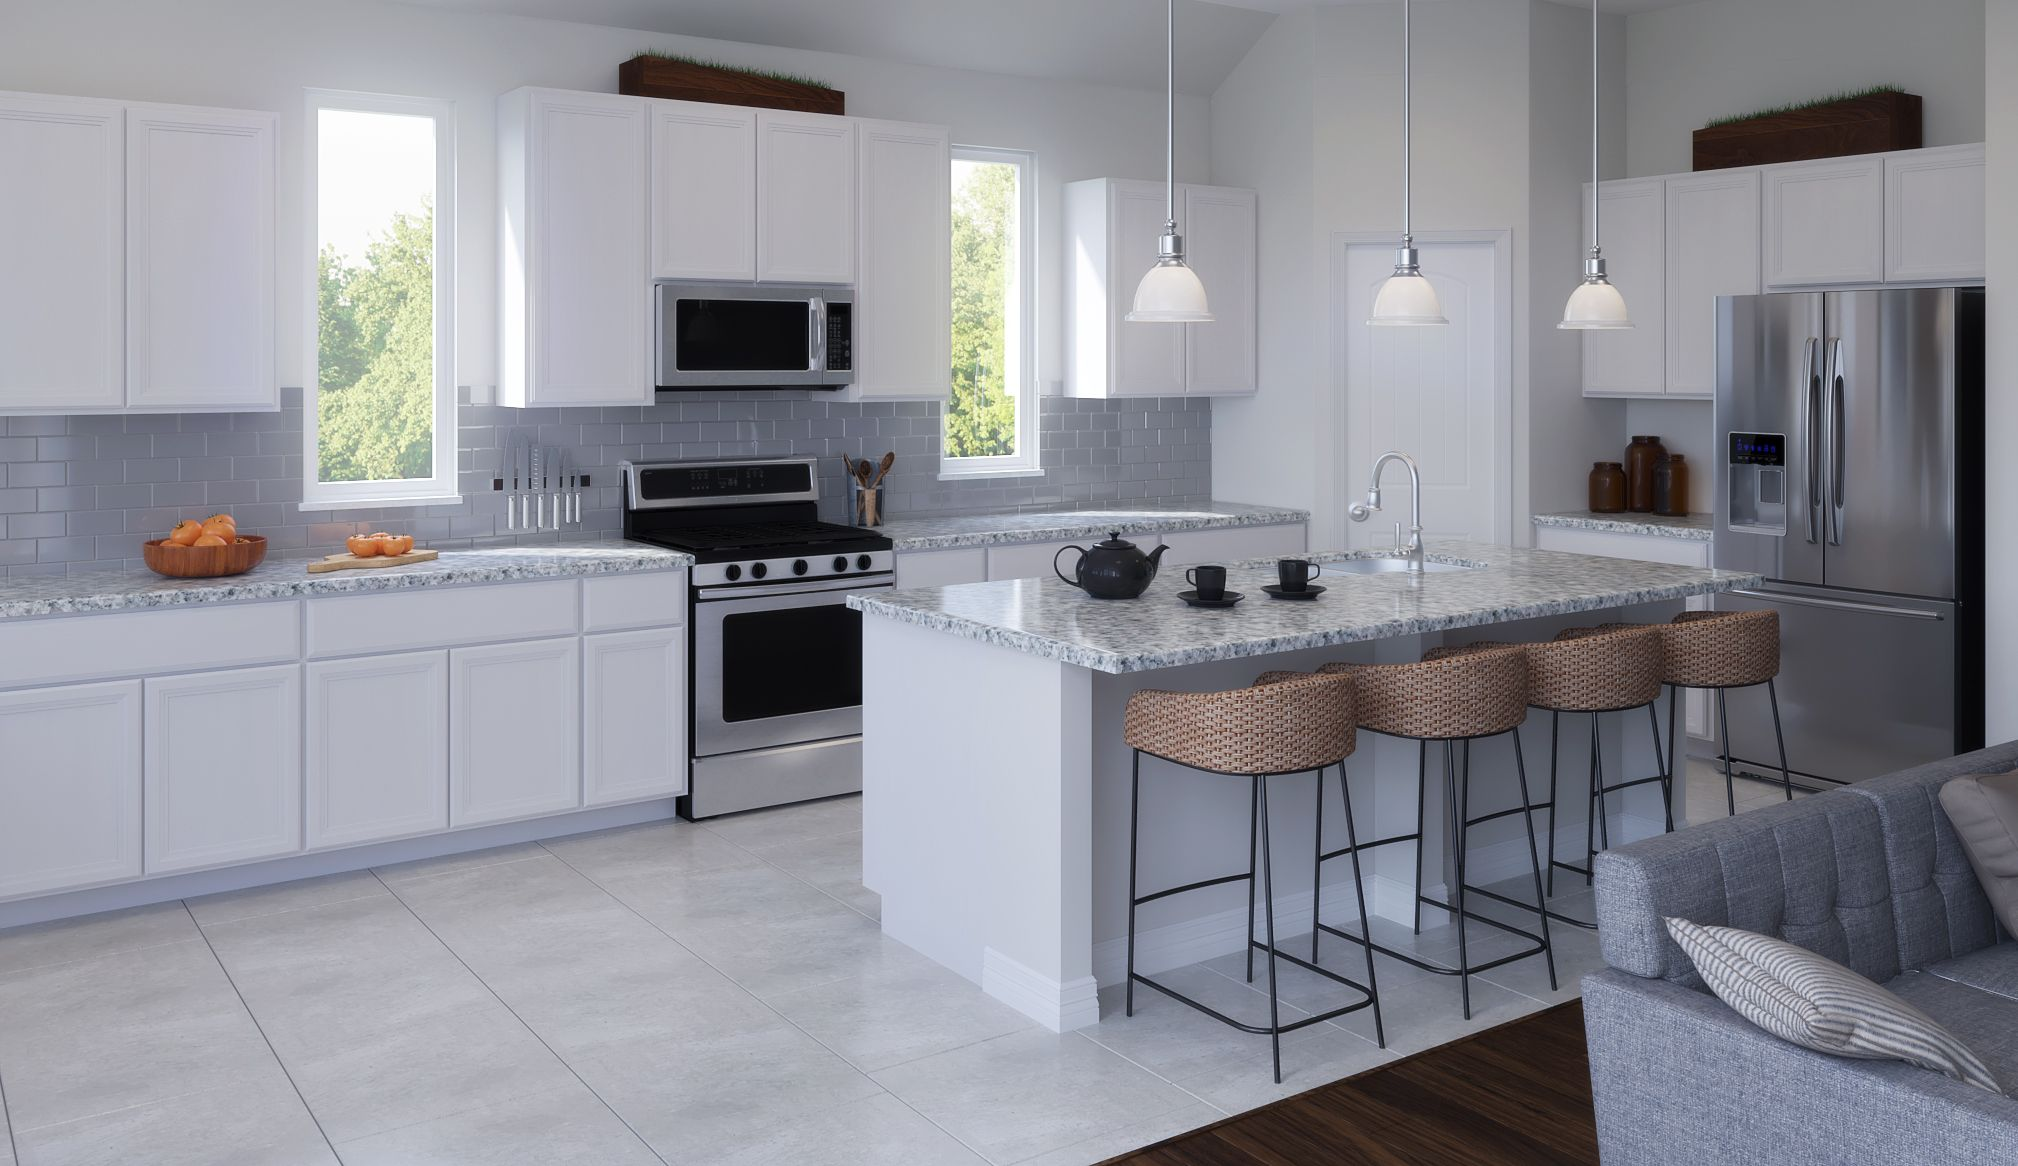 Kitchen featured in the Del Rio By Ashton Woods in San Antonio, TX